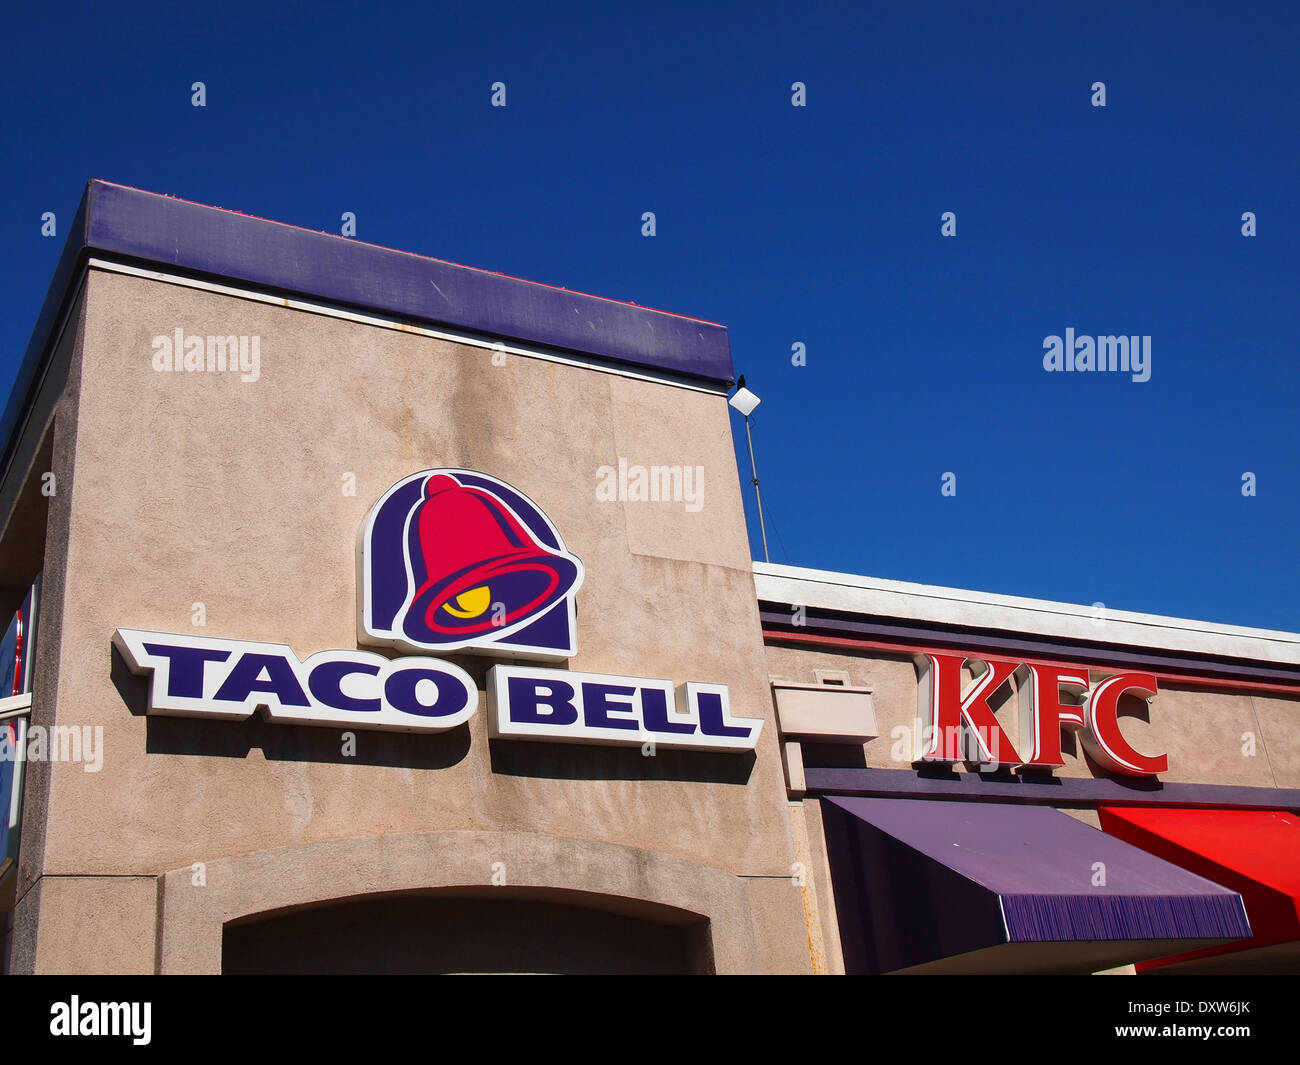 KFC Taco Bell fast food restaurant San Francisco - Stock Image